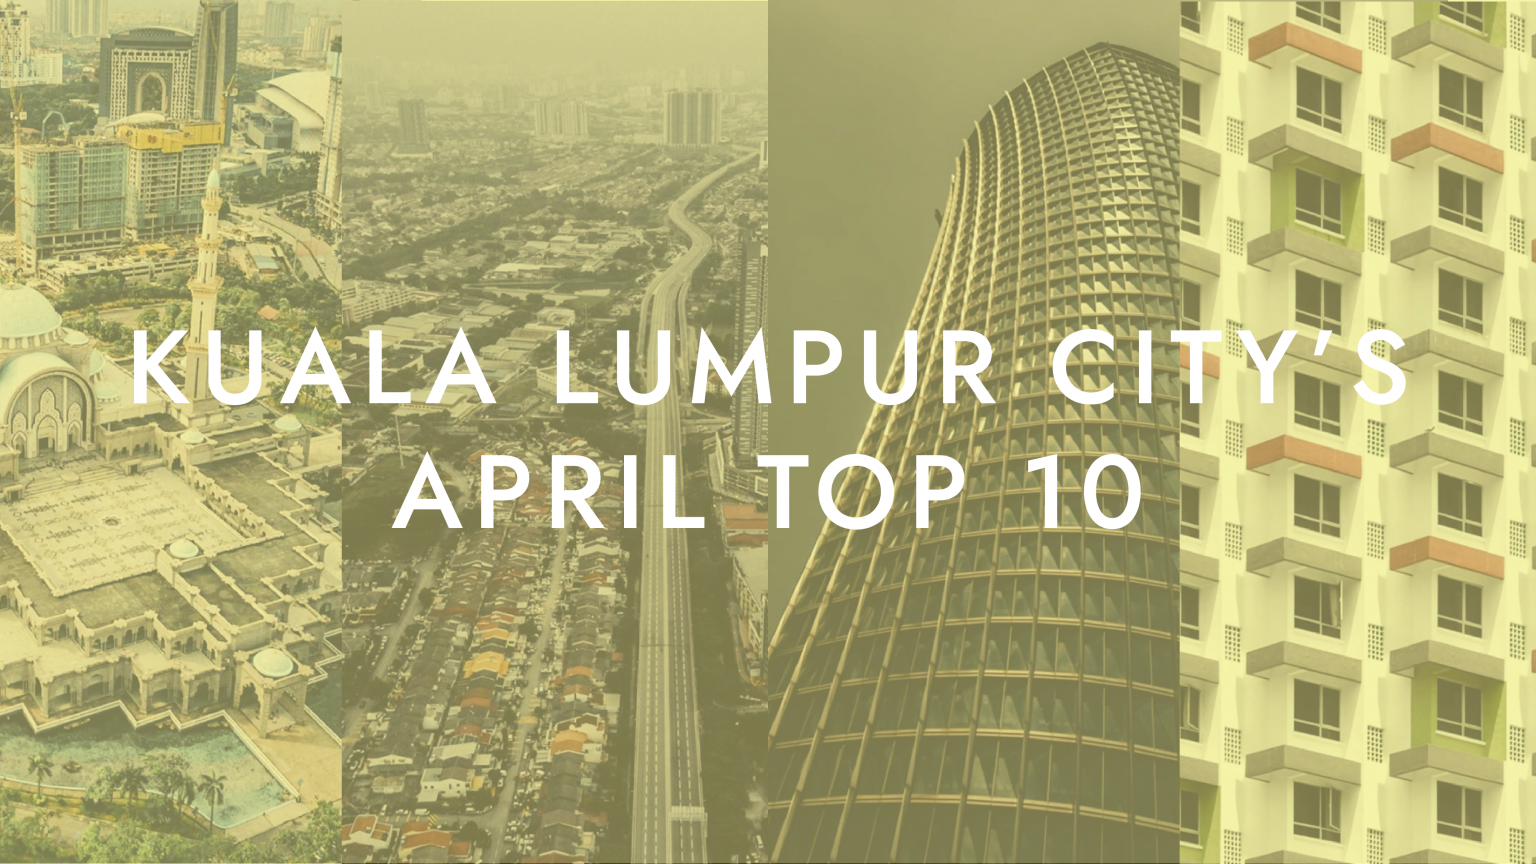 Top 10 photos of Kuala Lumpur city in April 2020